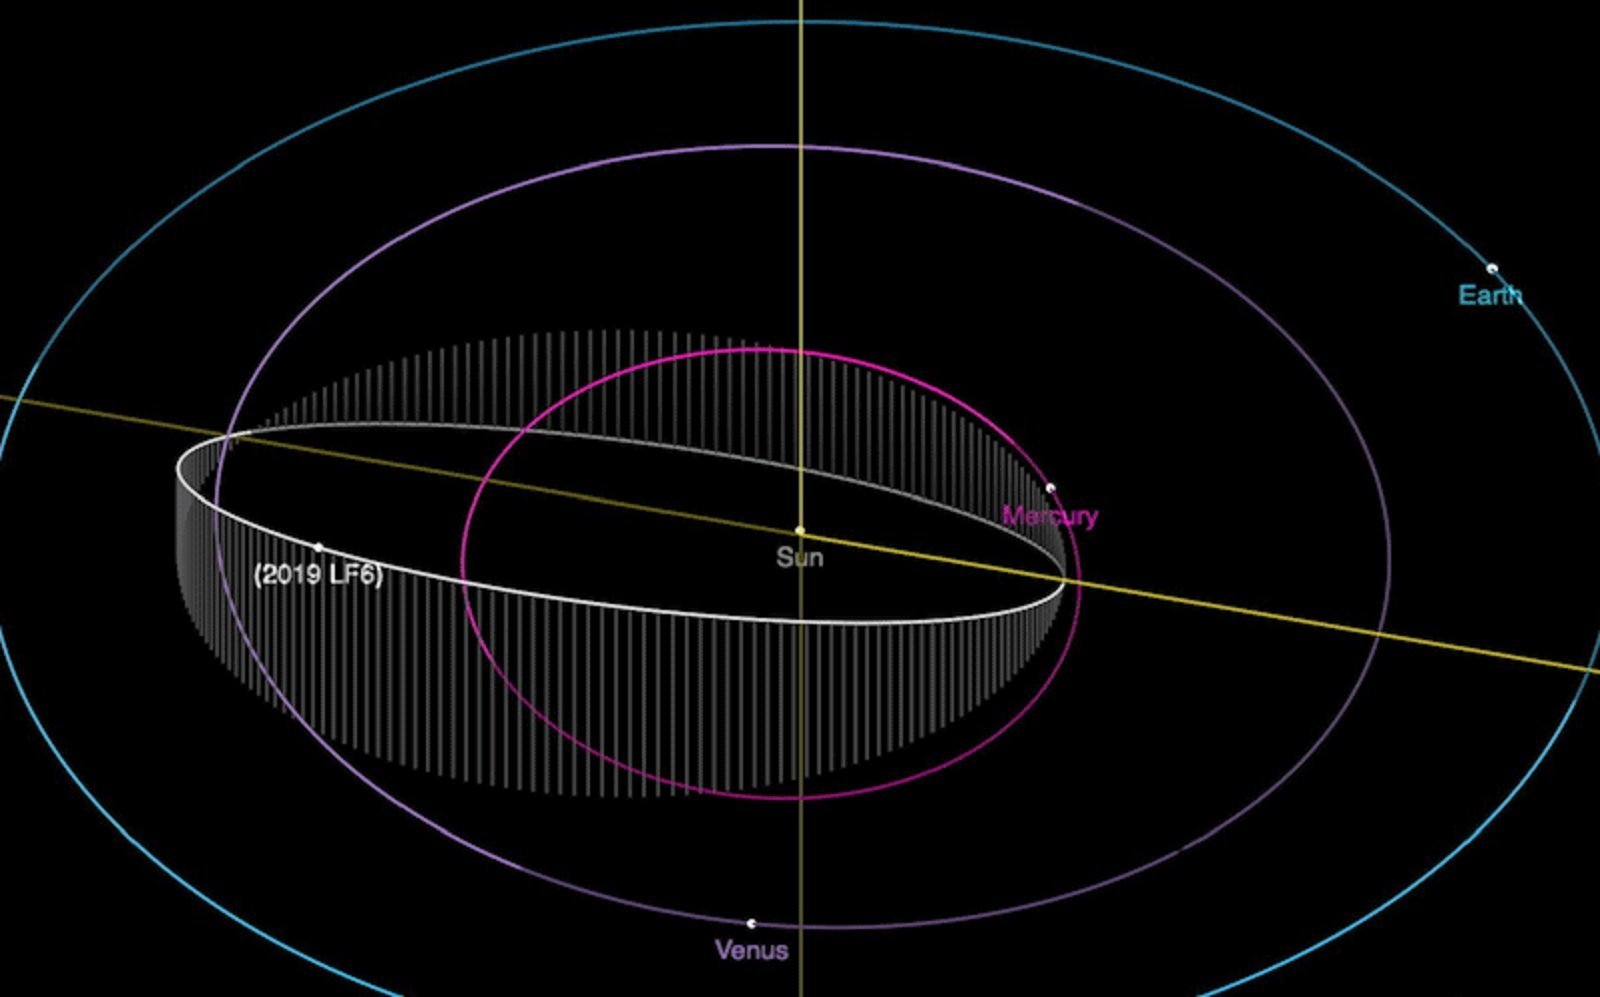 Astronomers have found a rare kilometer-wide asteroid with the shortest year known